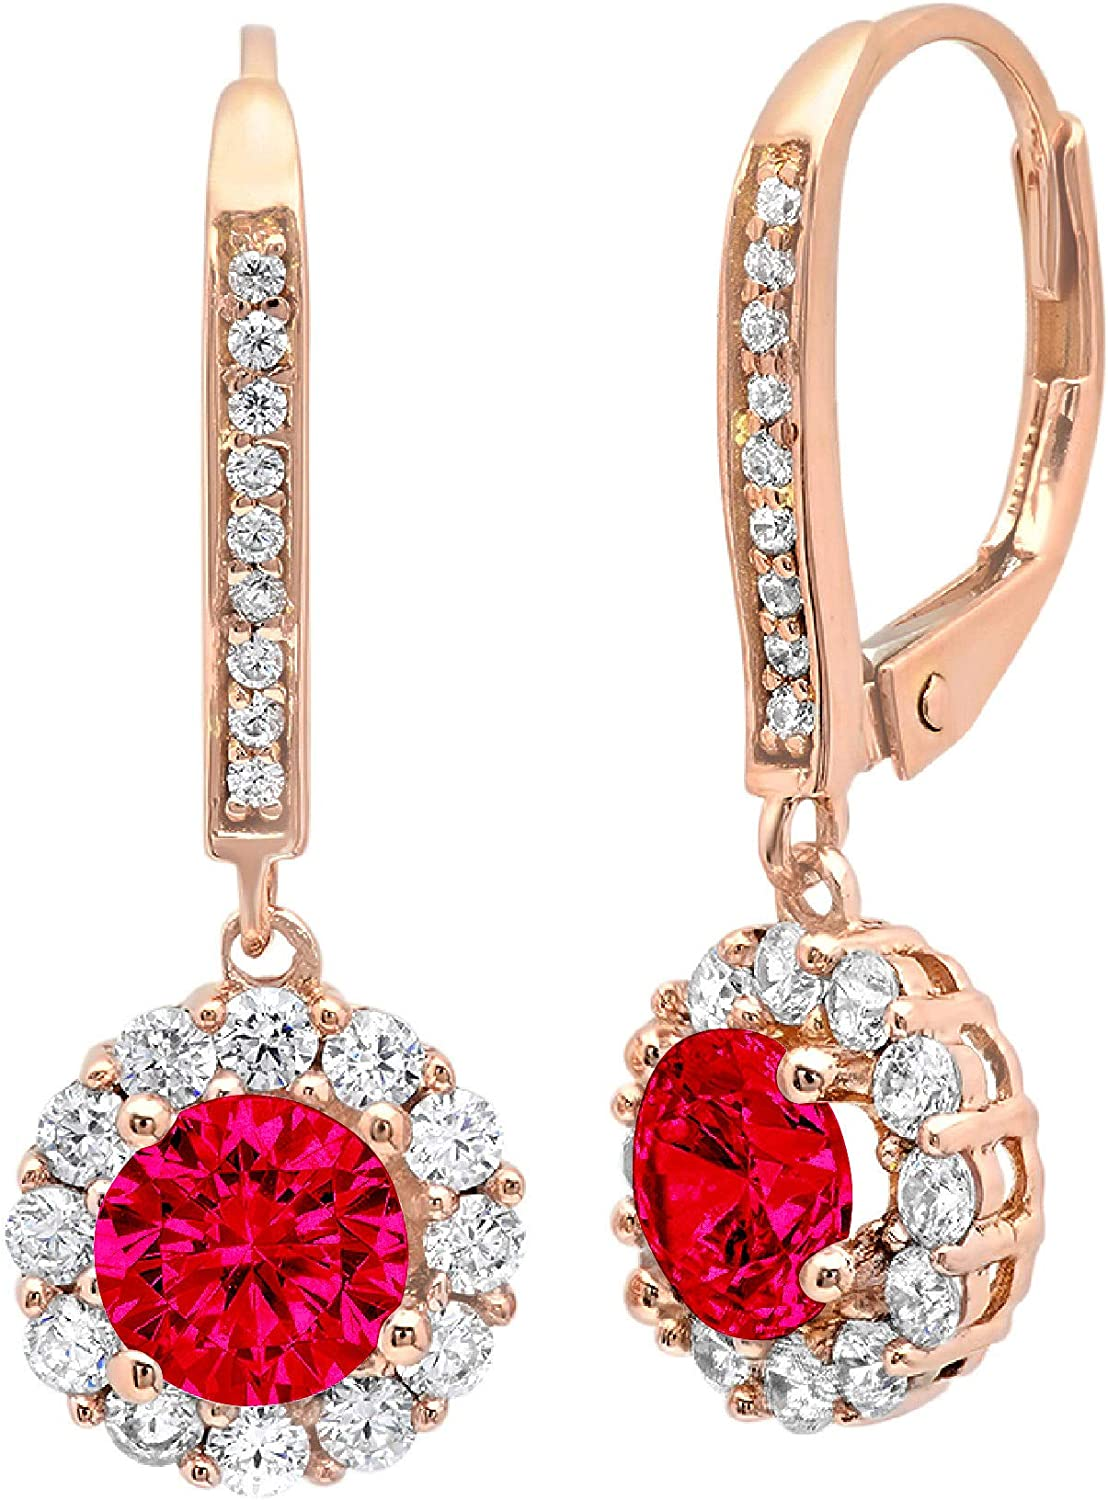 3.55 ct Brilliant Round Cut Halo Solitaire Genuine Pink Tourmaline Gemstone VVS1 Ideal Pair of Leverback Drop Dangle Designer Earrings Solid 18k Rose Pink Gold